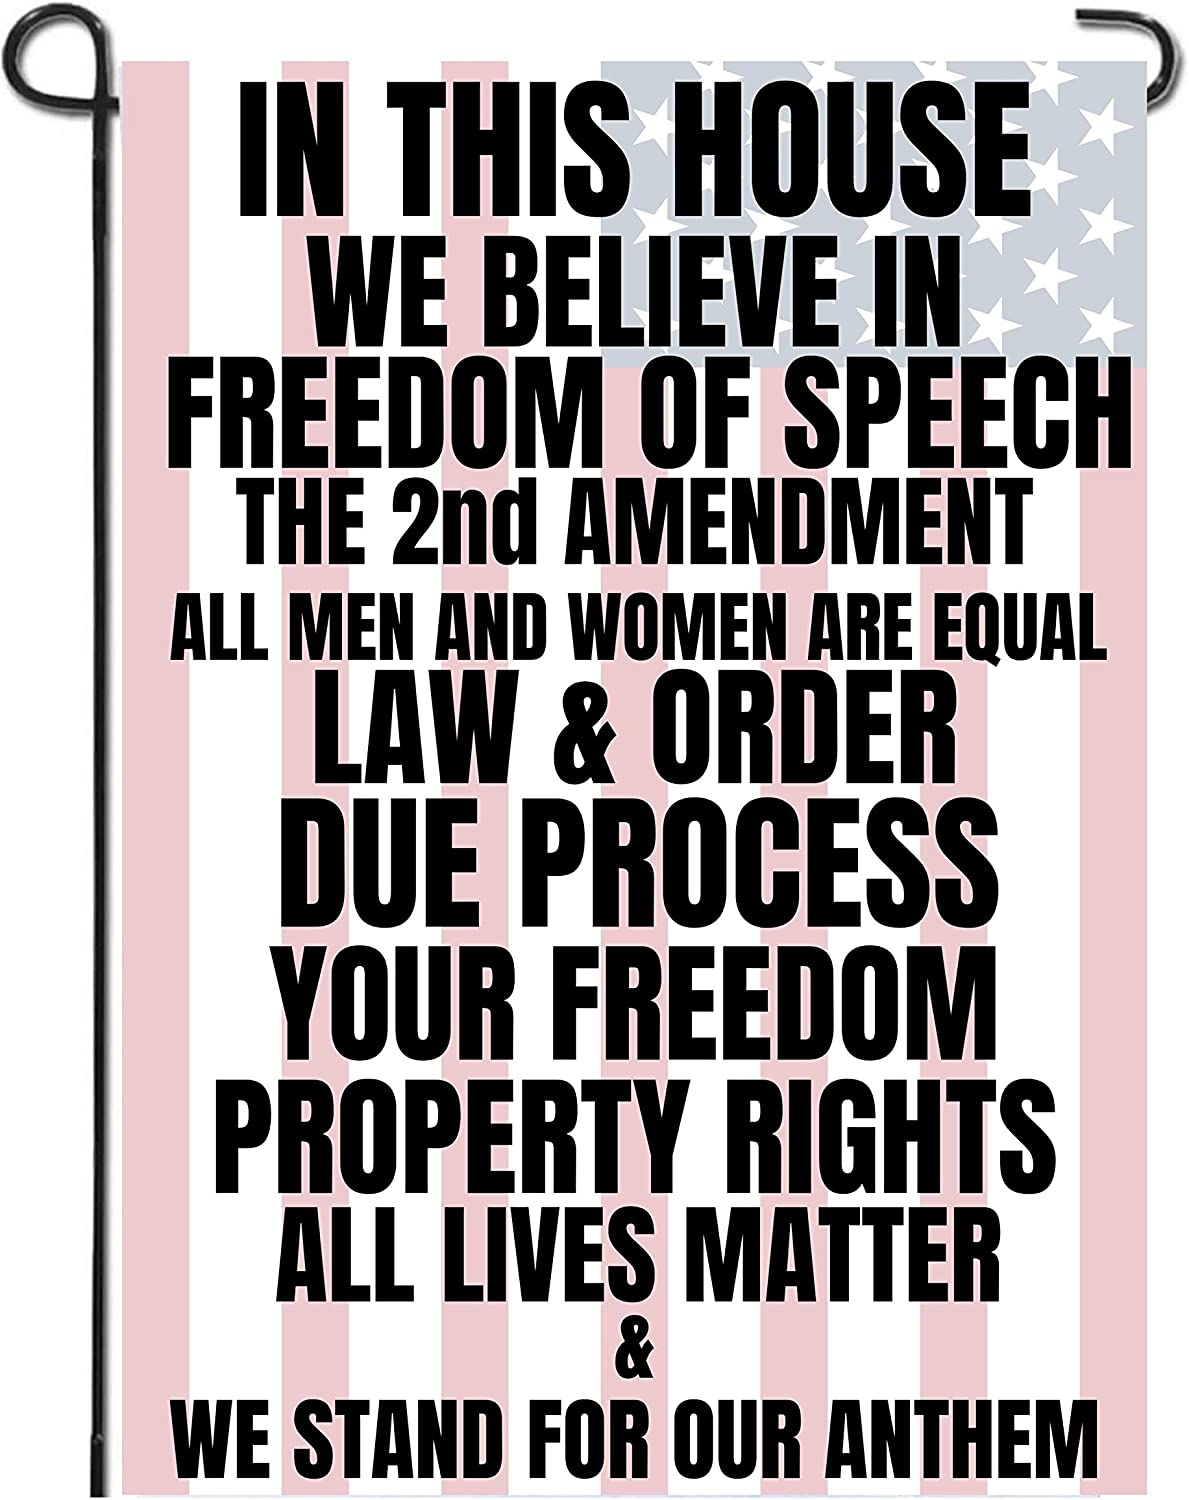 "Libertee Shirts in This House we Believe in The 2nd Amendment Garden Flag, 12""X18"" Conservative Patriotic Free Speech Yard Sign"